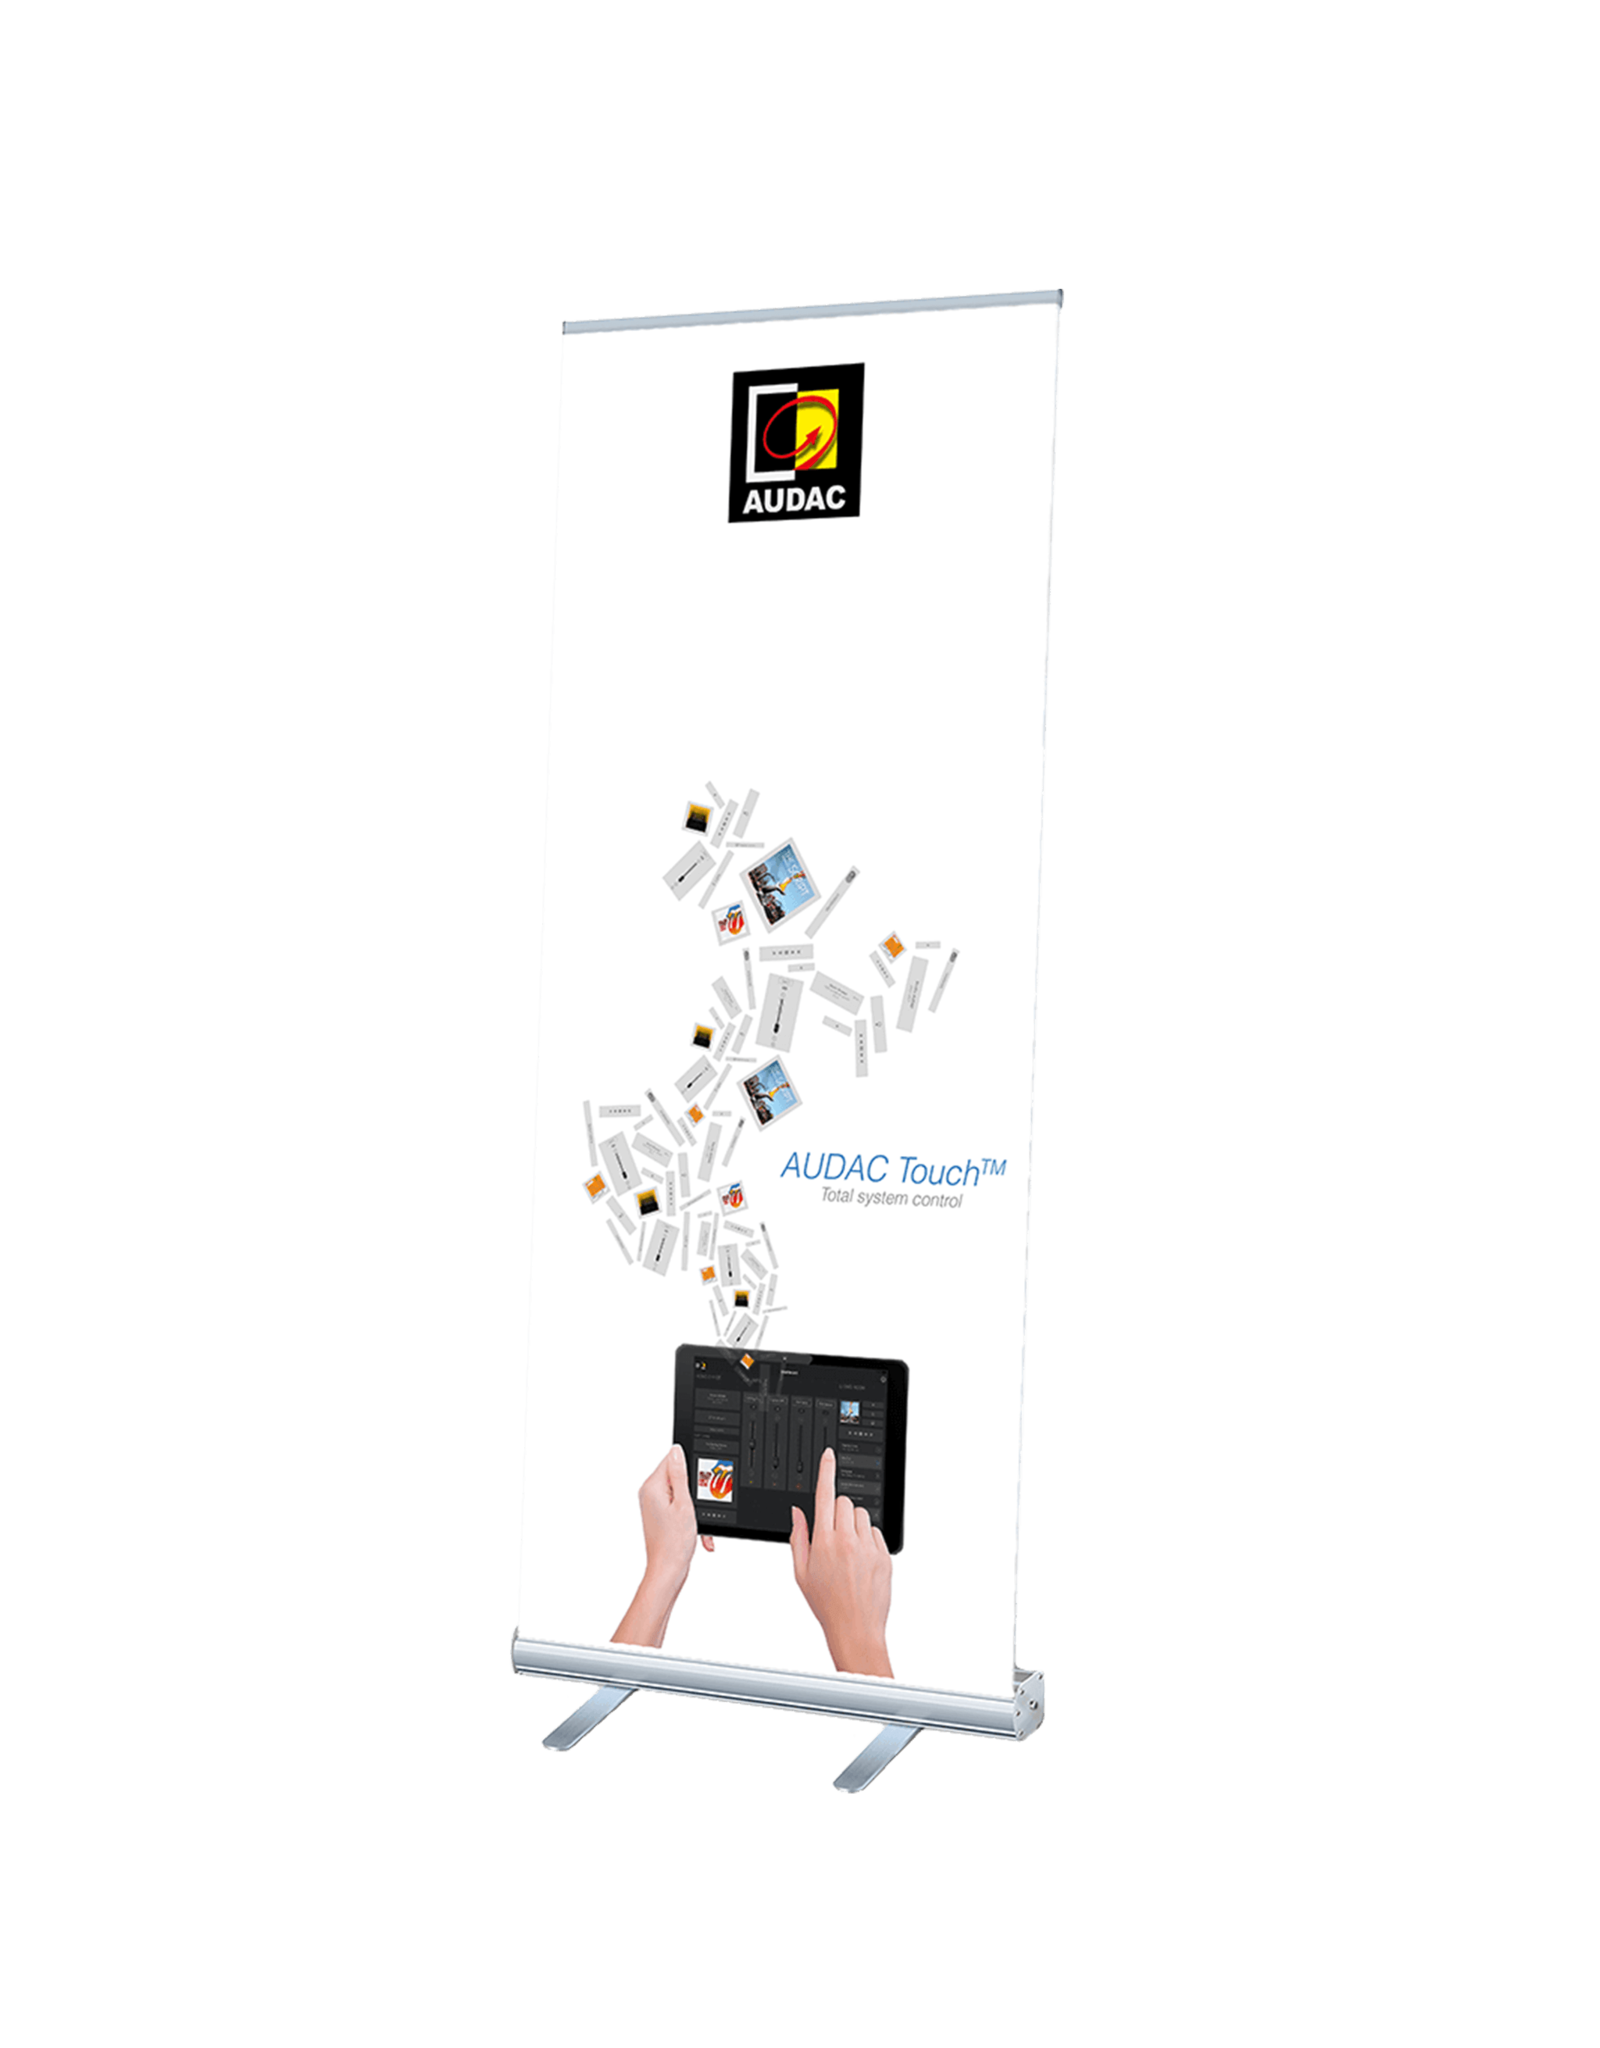 Audac AUDAC Touch™ roll-up display